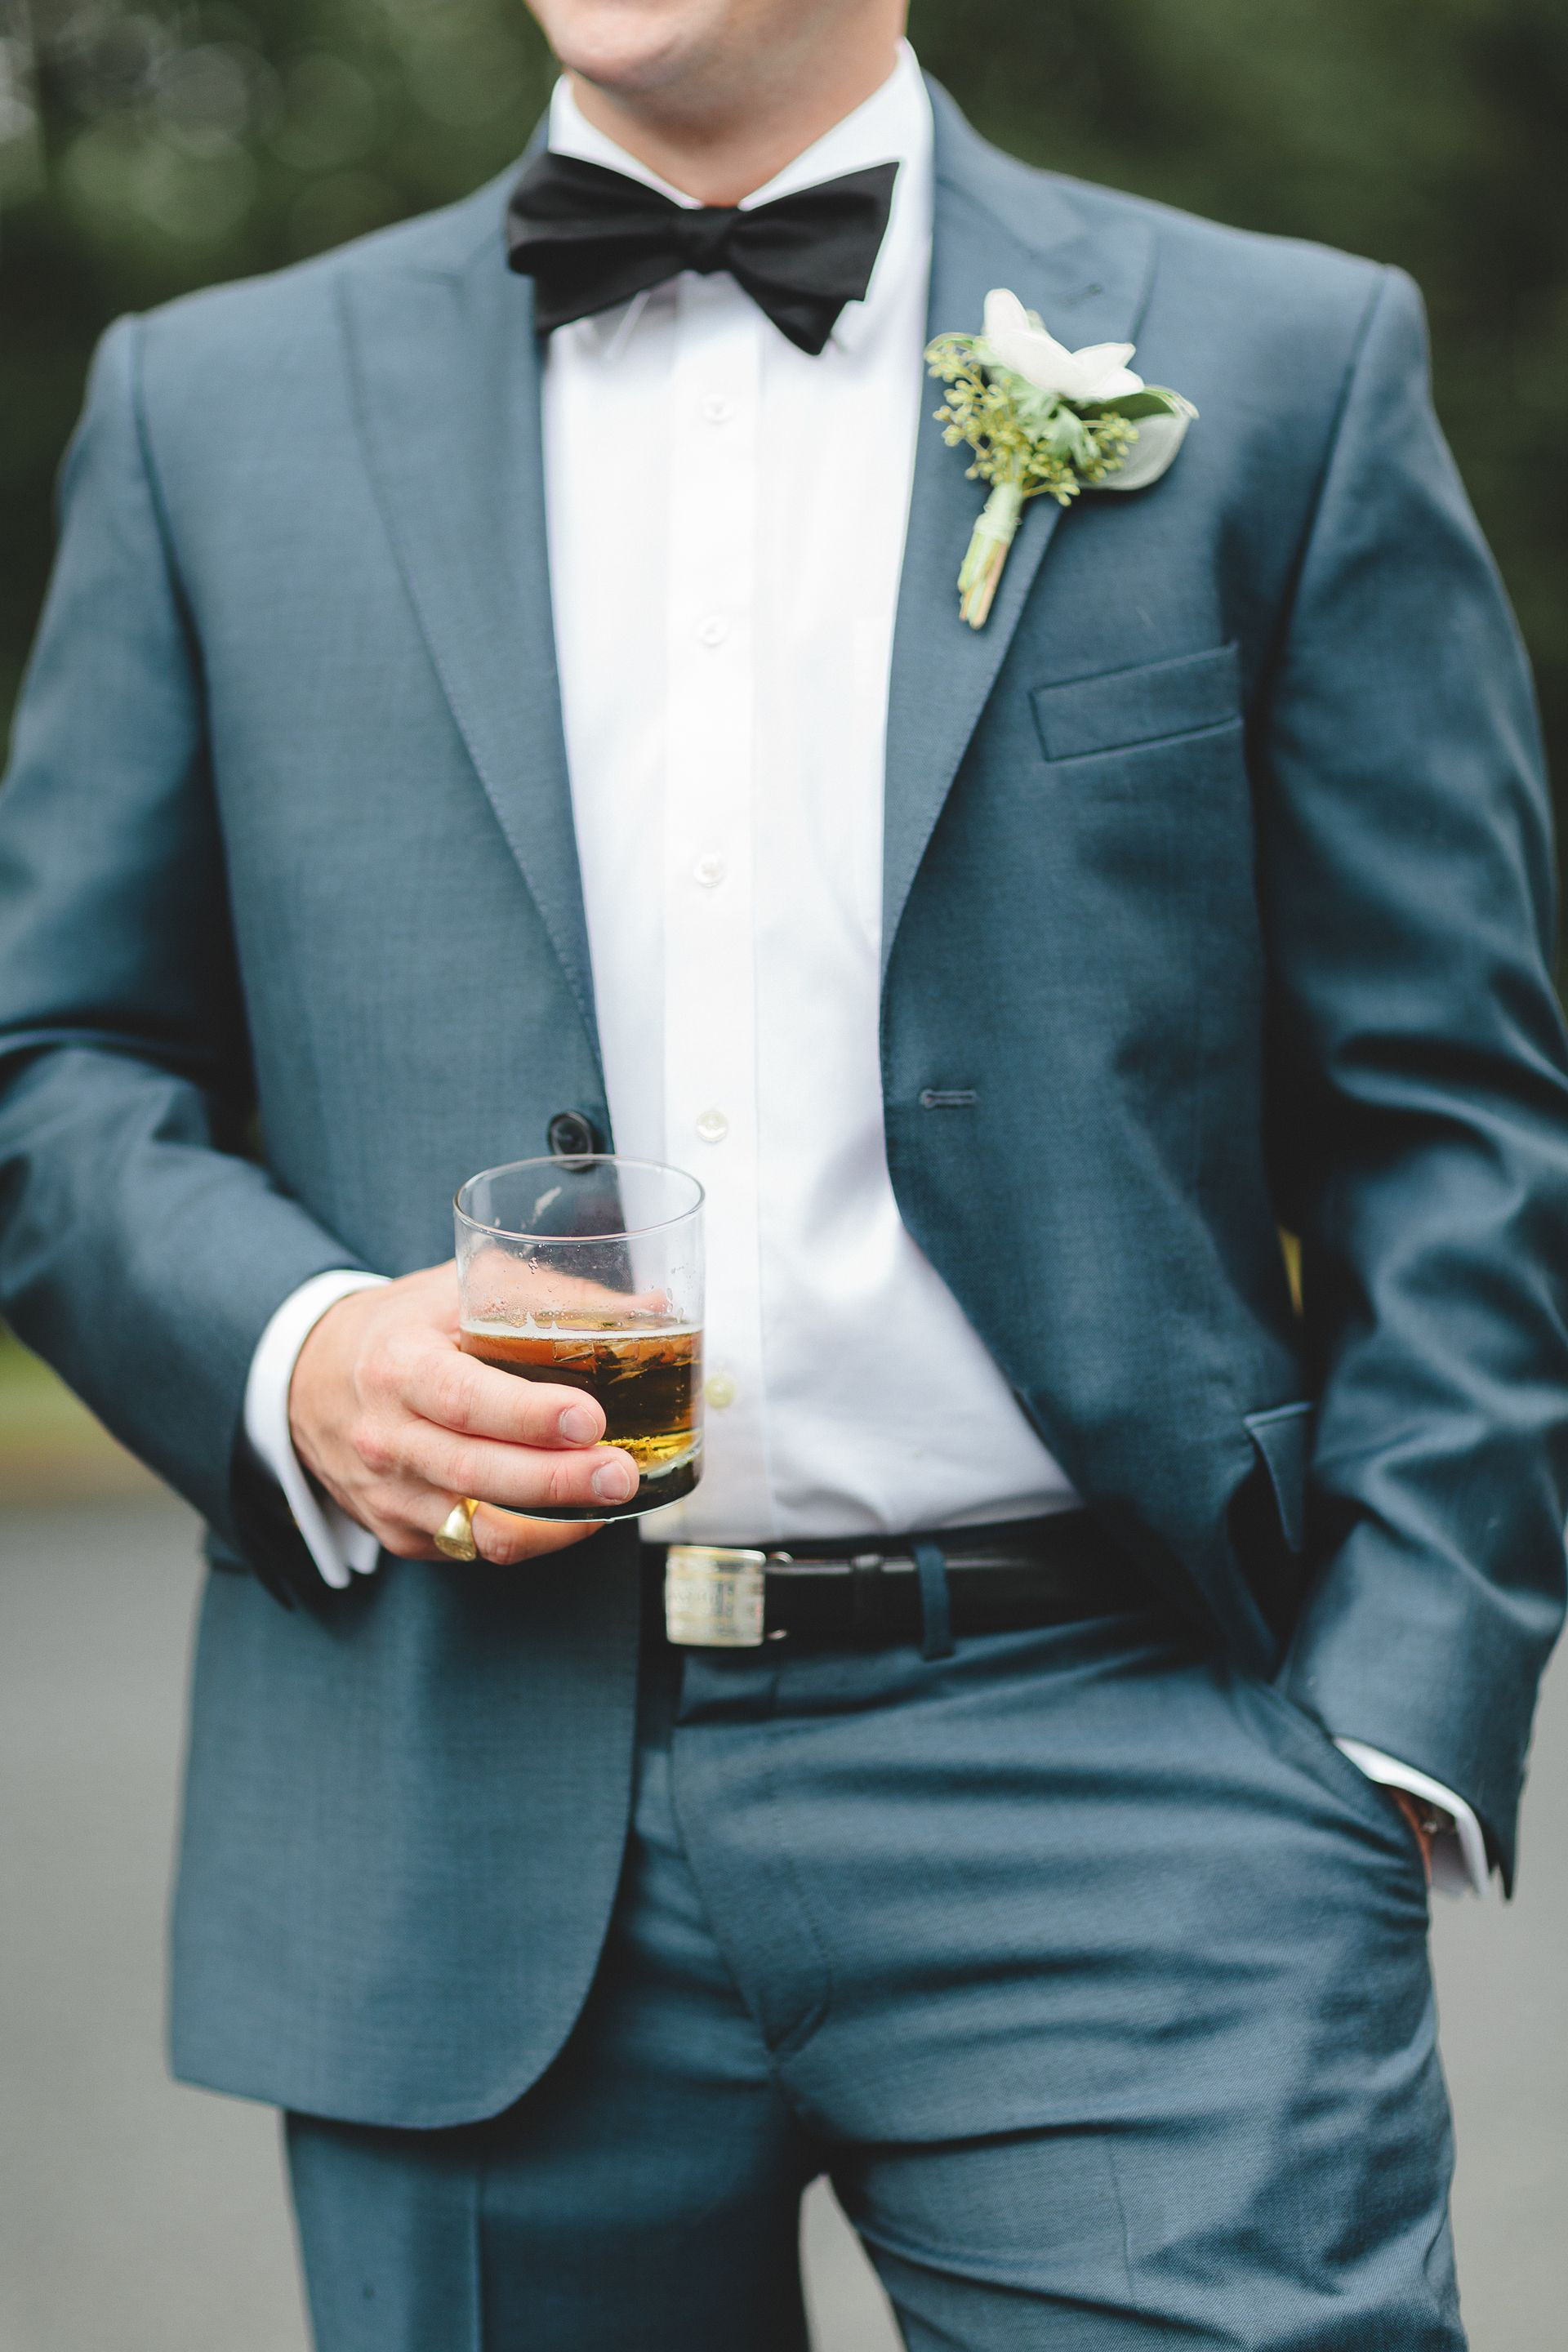 The Smarter Way to Wed | Teal suit, Black bow tie and Groom style